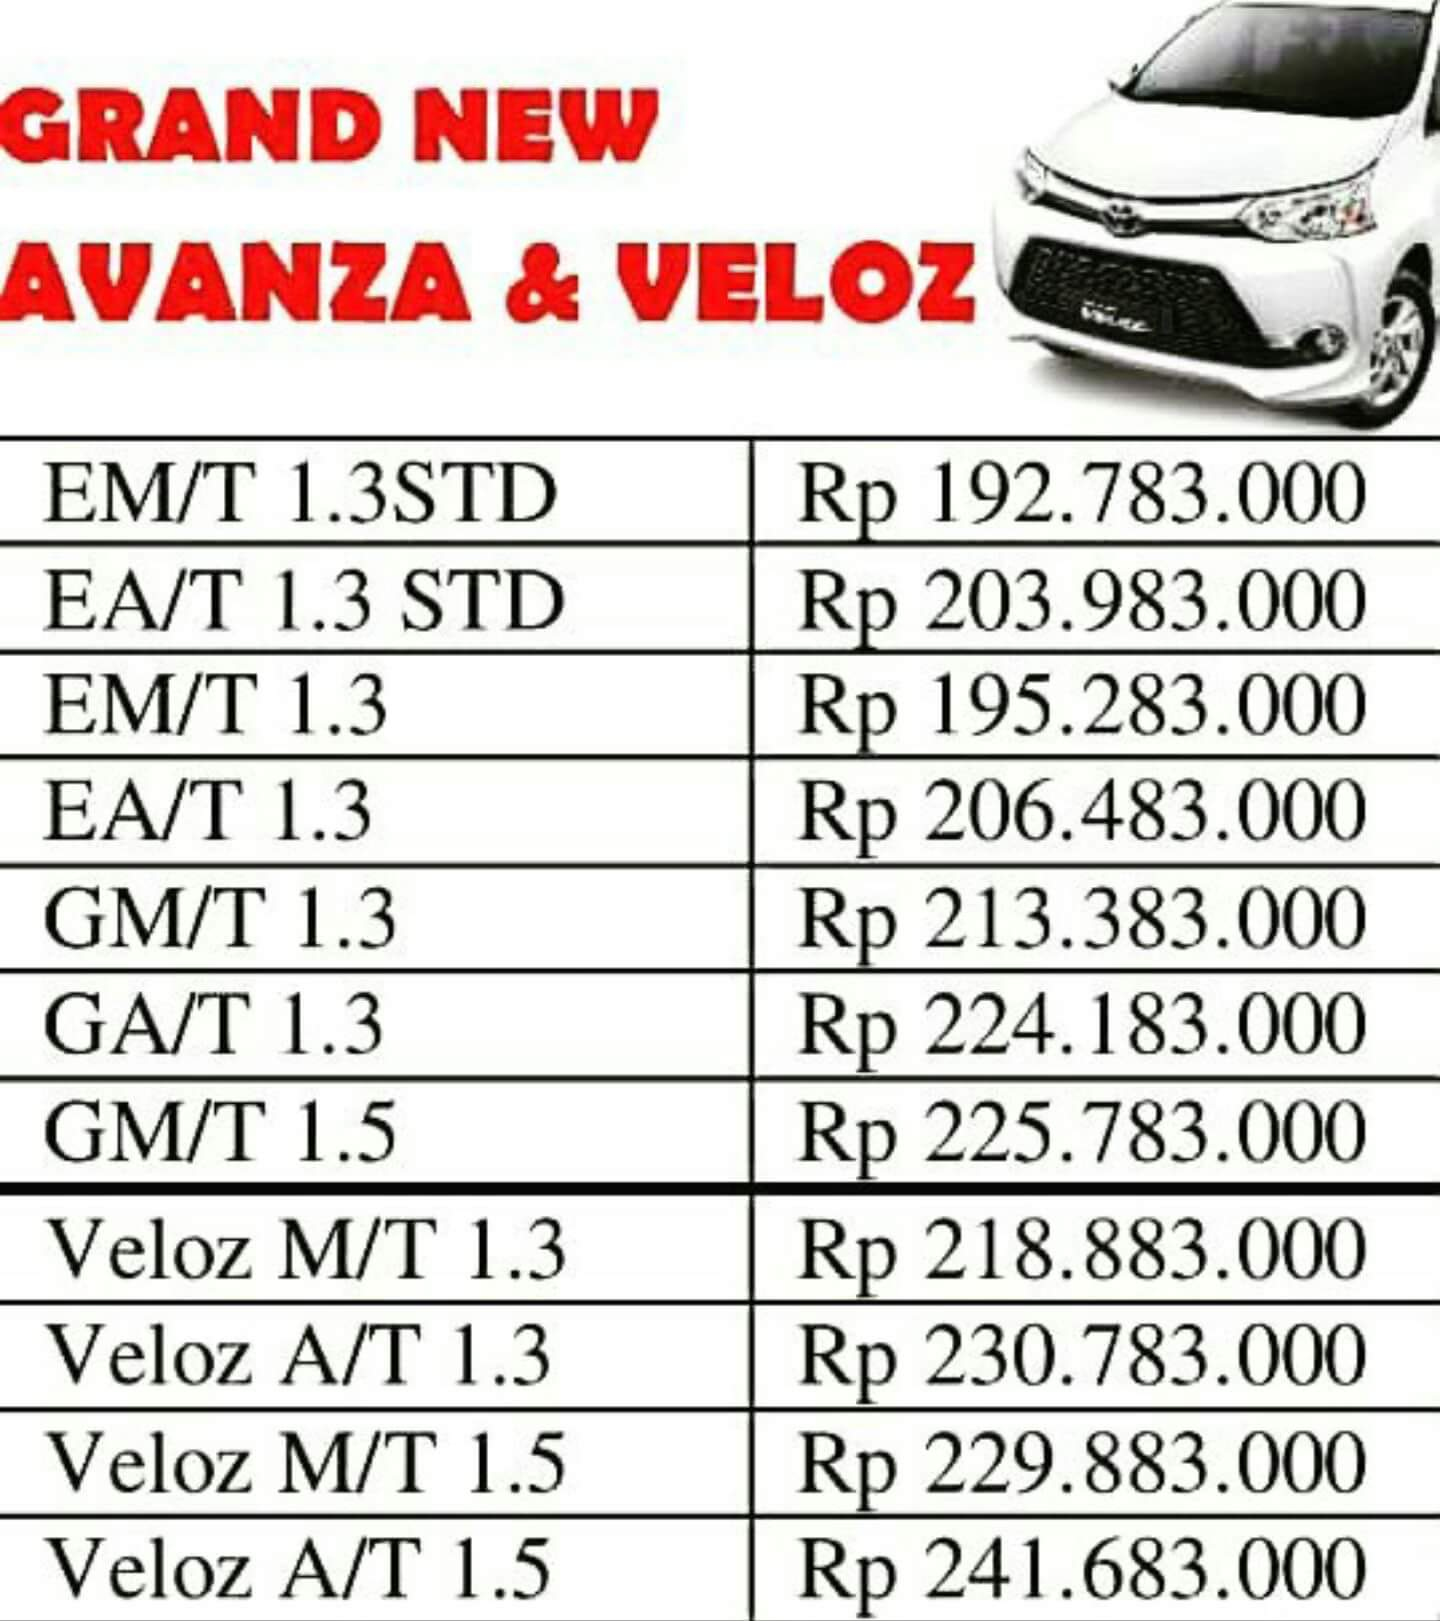 harga all new vellfire grand avanza g 2017 toyota surabaya, dealer surabaya ...